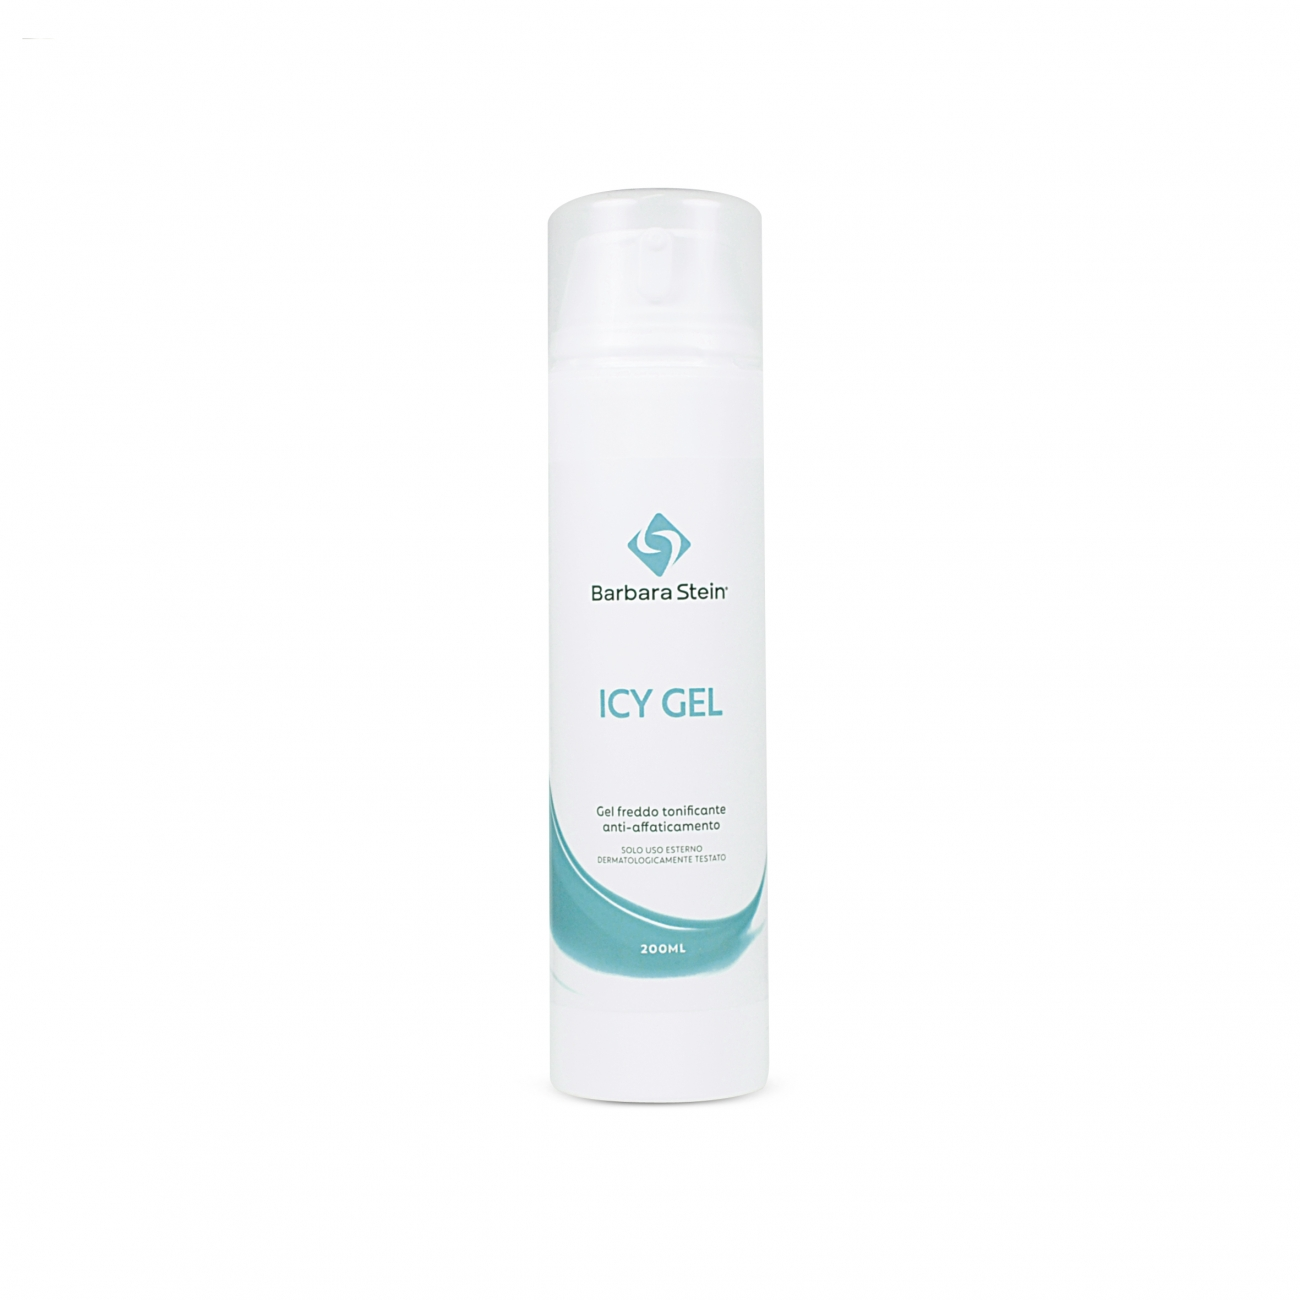 ICY GEL (200 ml)